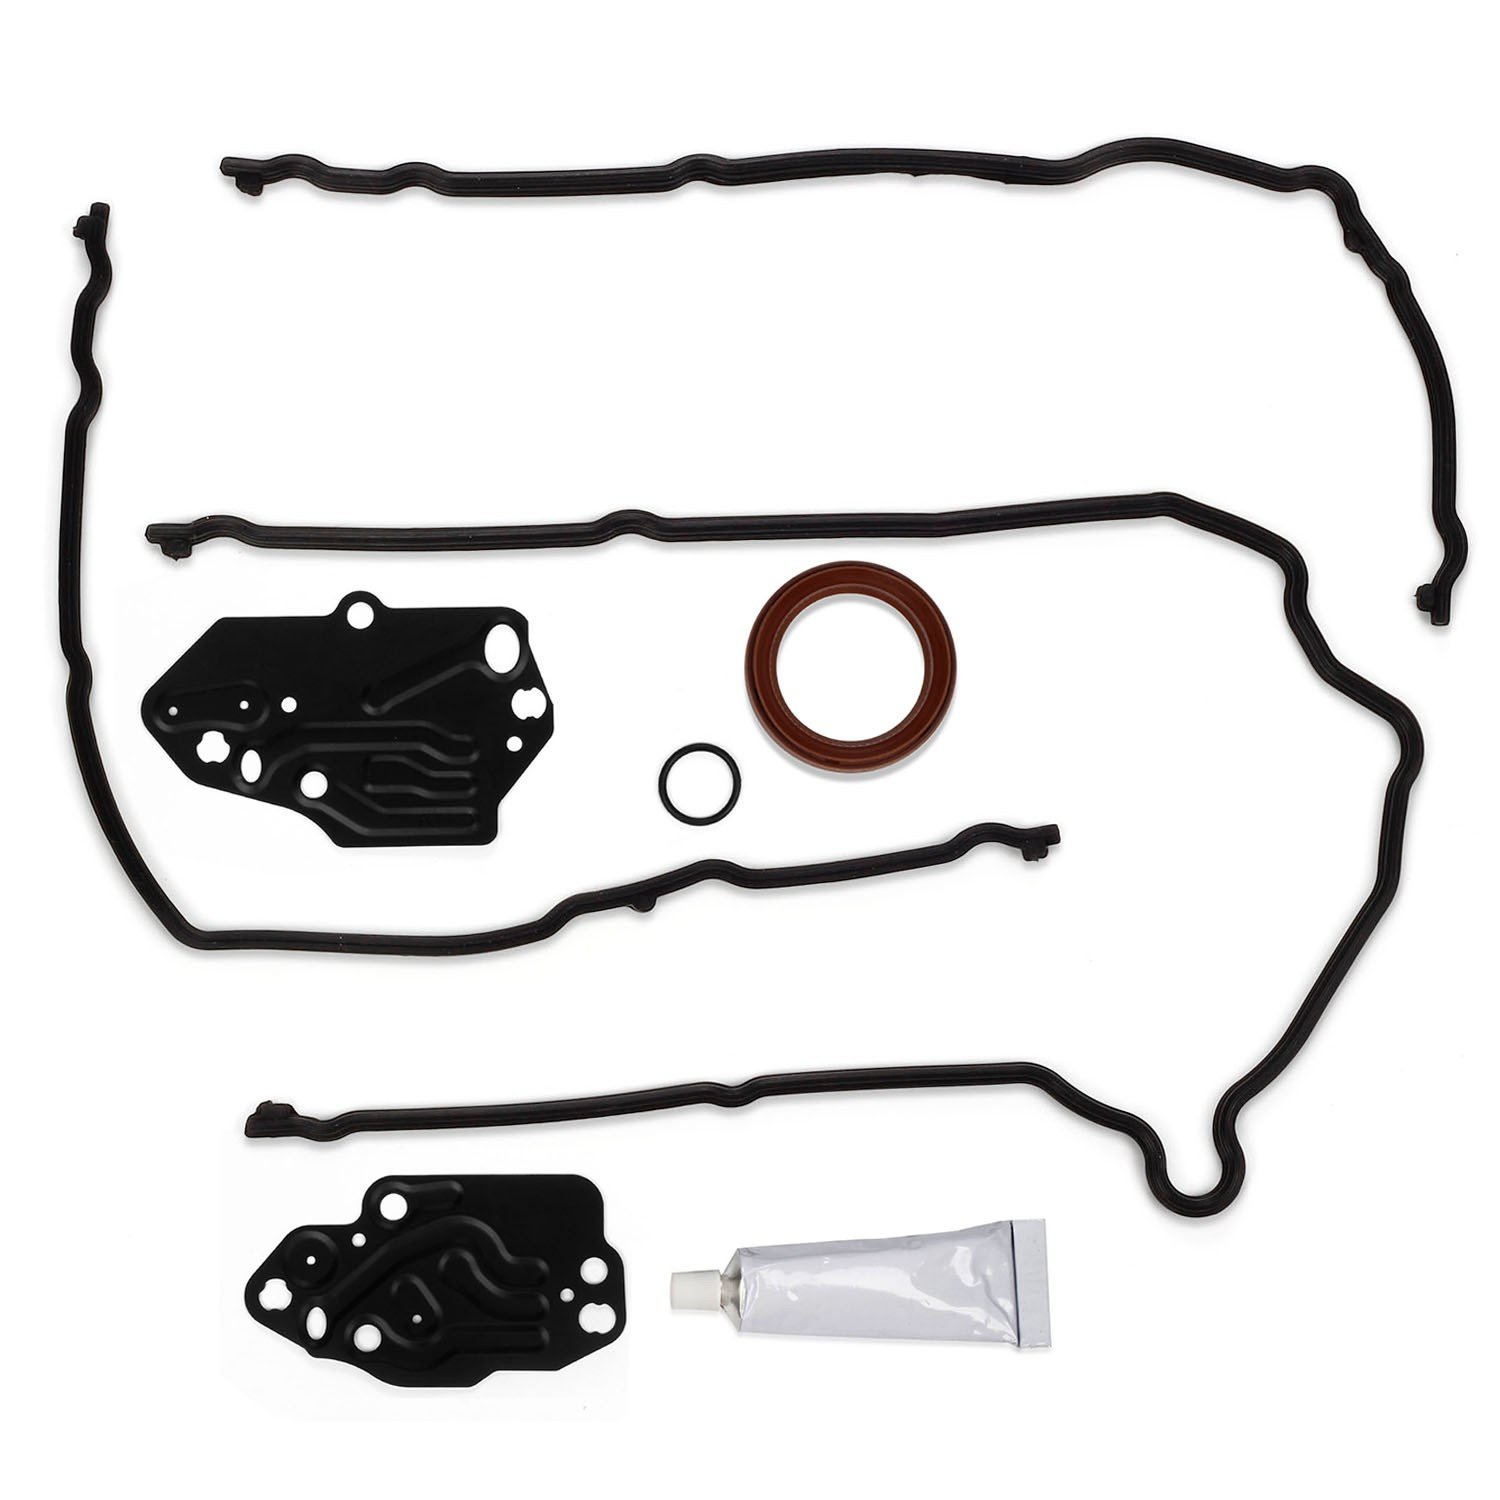 SL1000 SL1000,TCS21200 Timing Cover Gasket Set Replacement For Ford F150 F250 F350 5.4 2004-2012 TCS21200